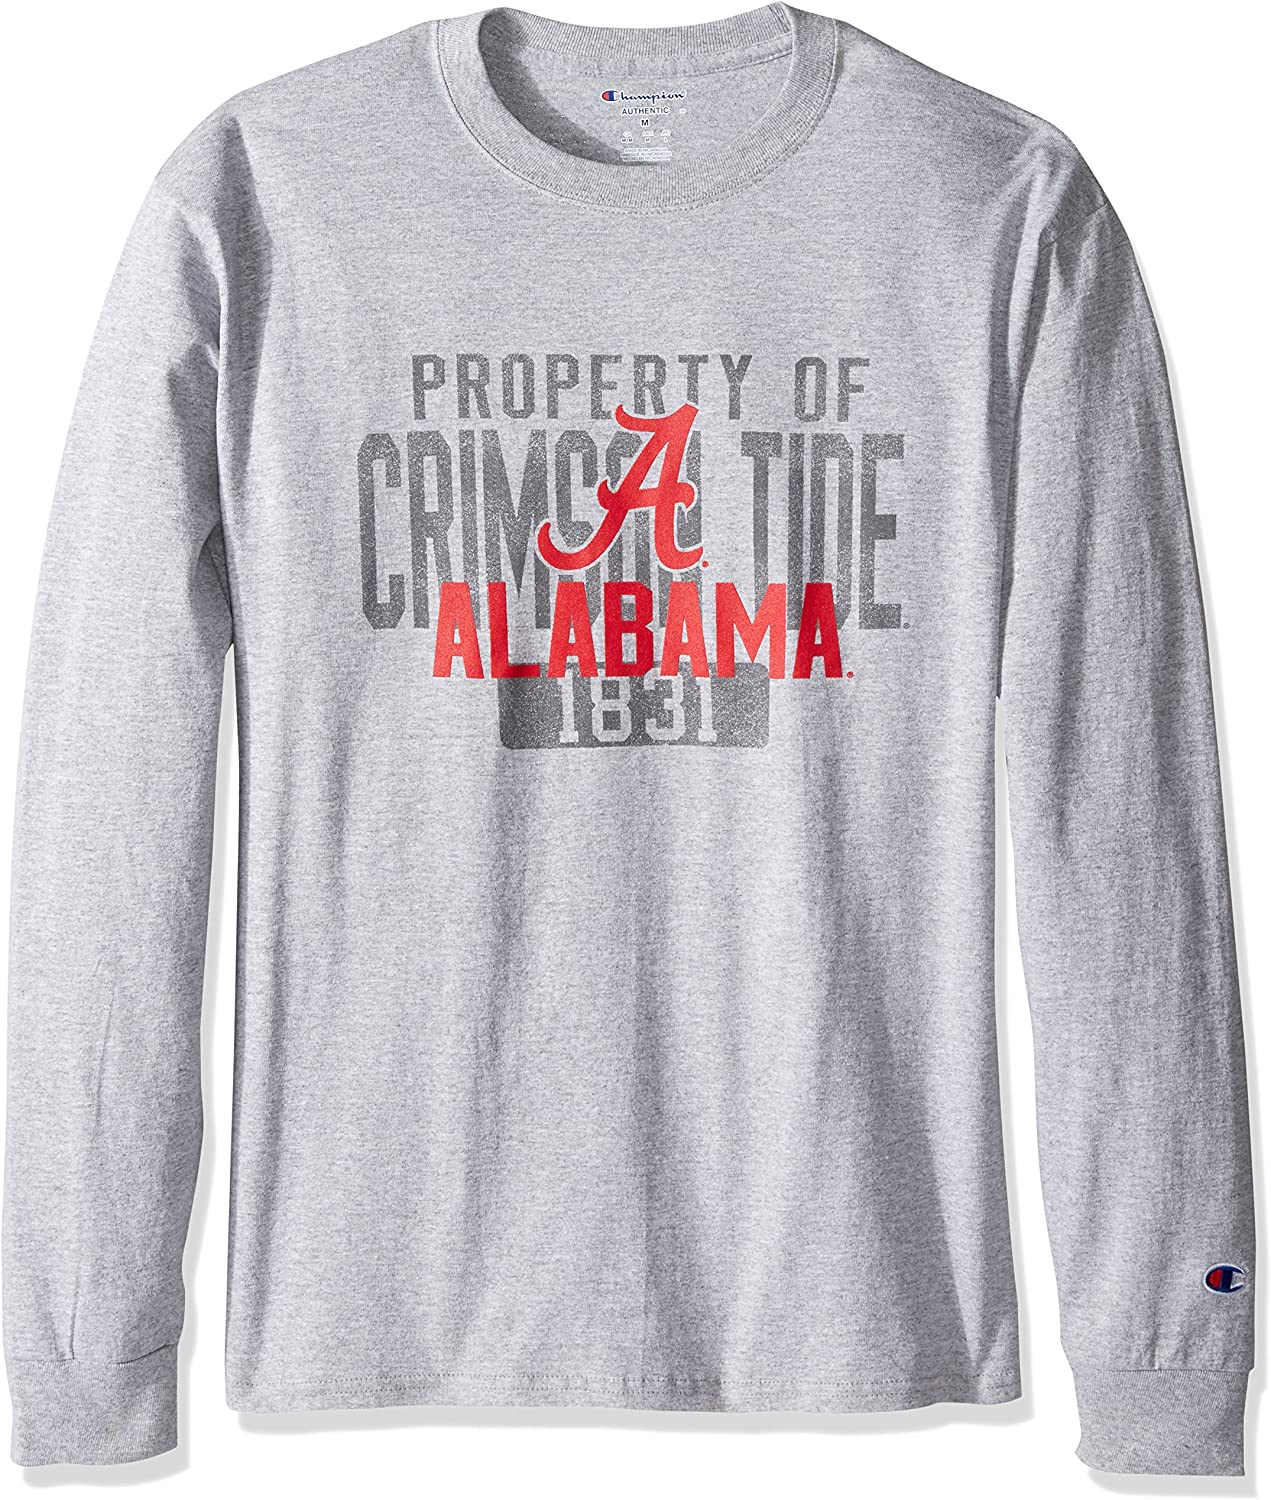 Champion NCAA Mens Long Sleeve Lightweight T-shirt Officially Licensed 100/% Cotton Tagless Tee NC State Wolfpack Large